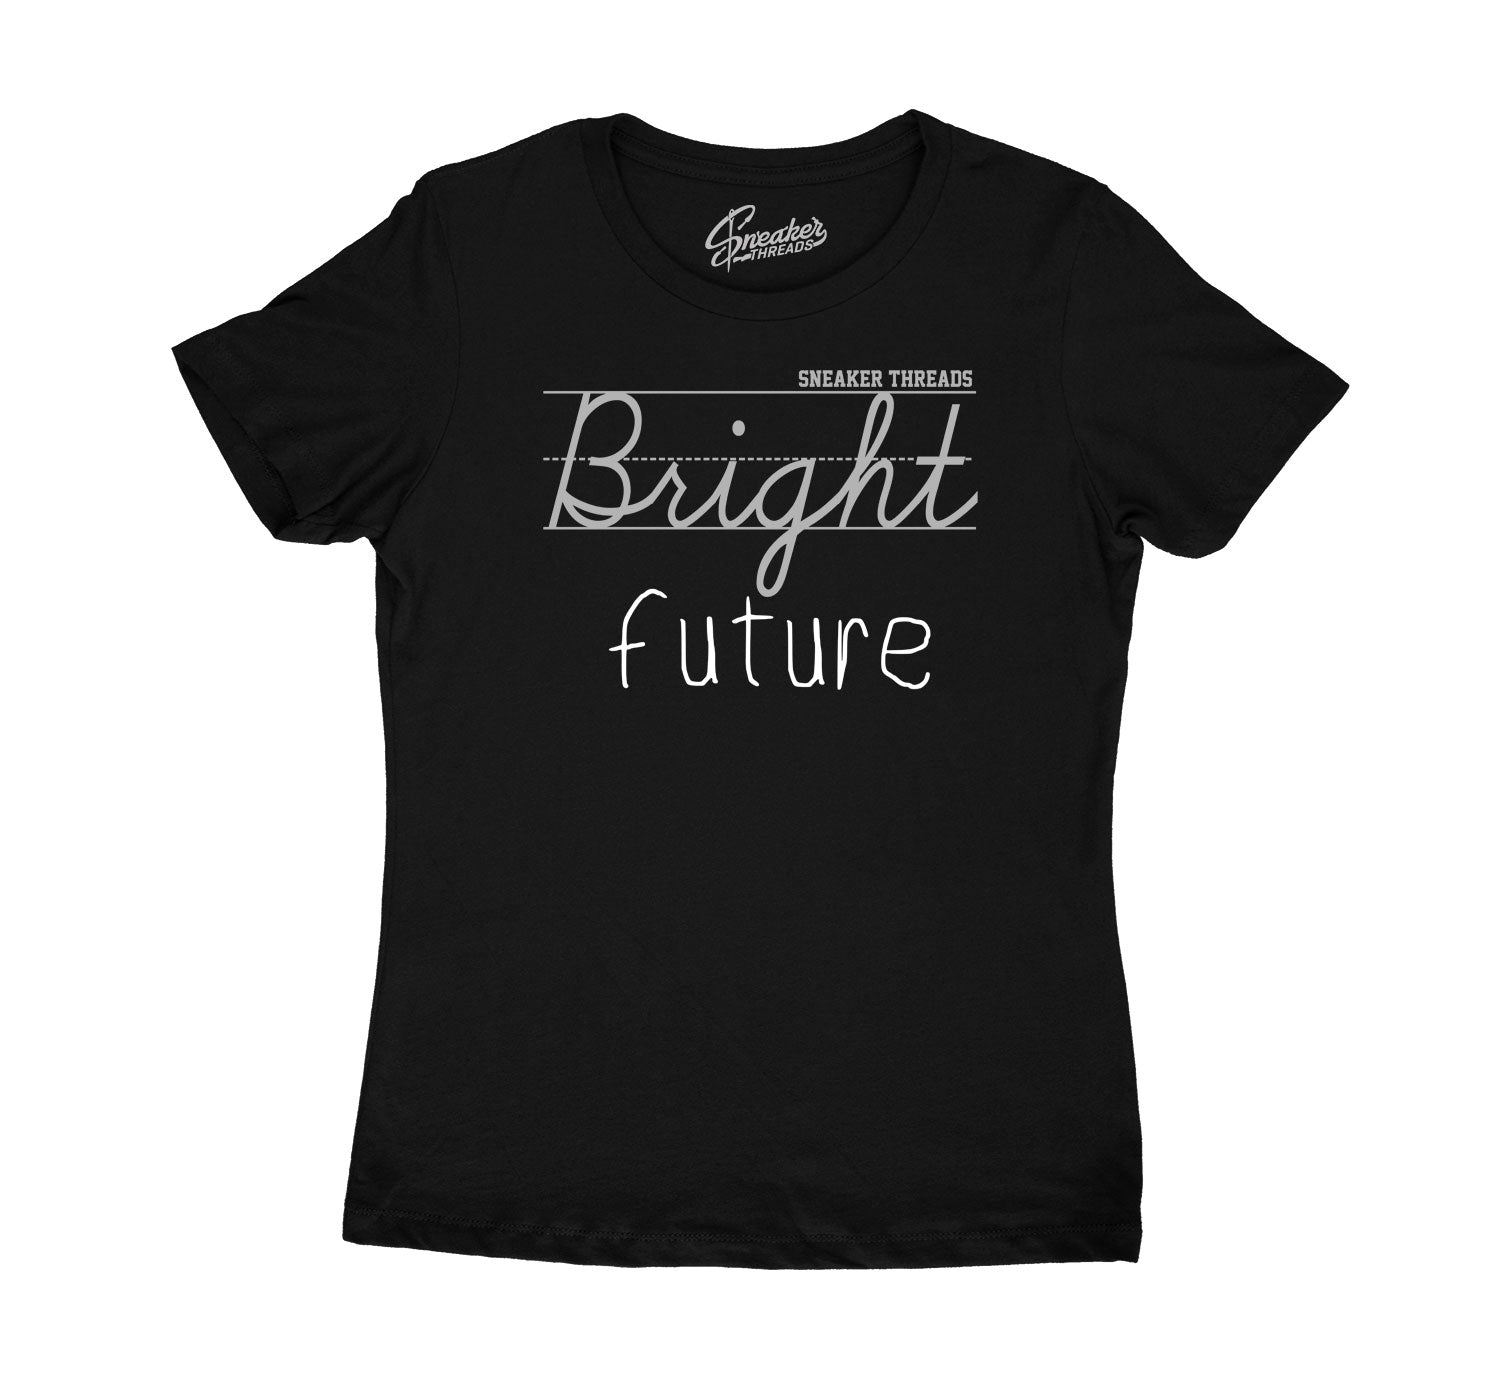 Womens Silver Toe 1 Shirt - Bright Future- Black